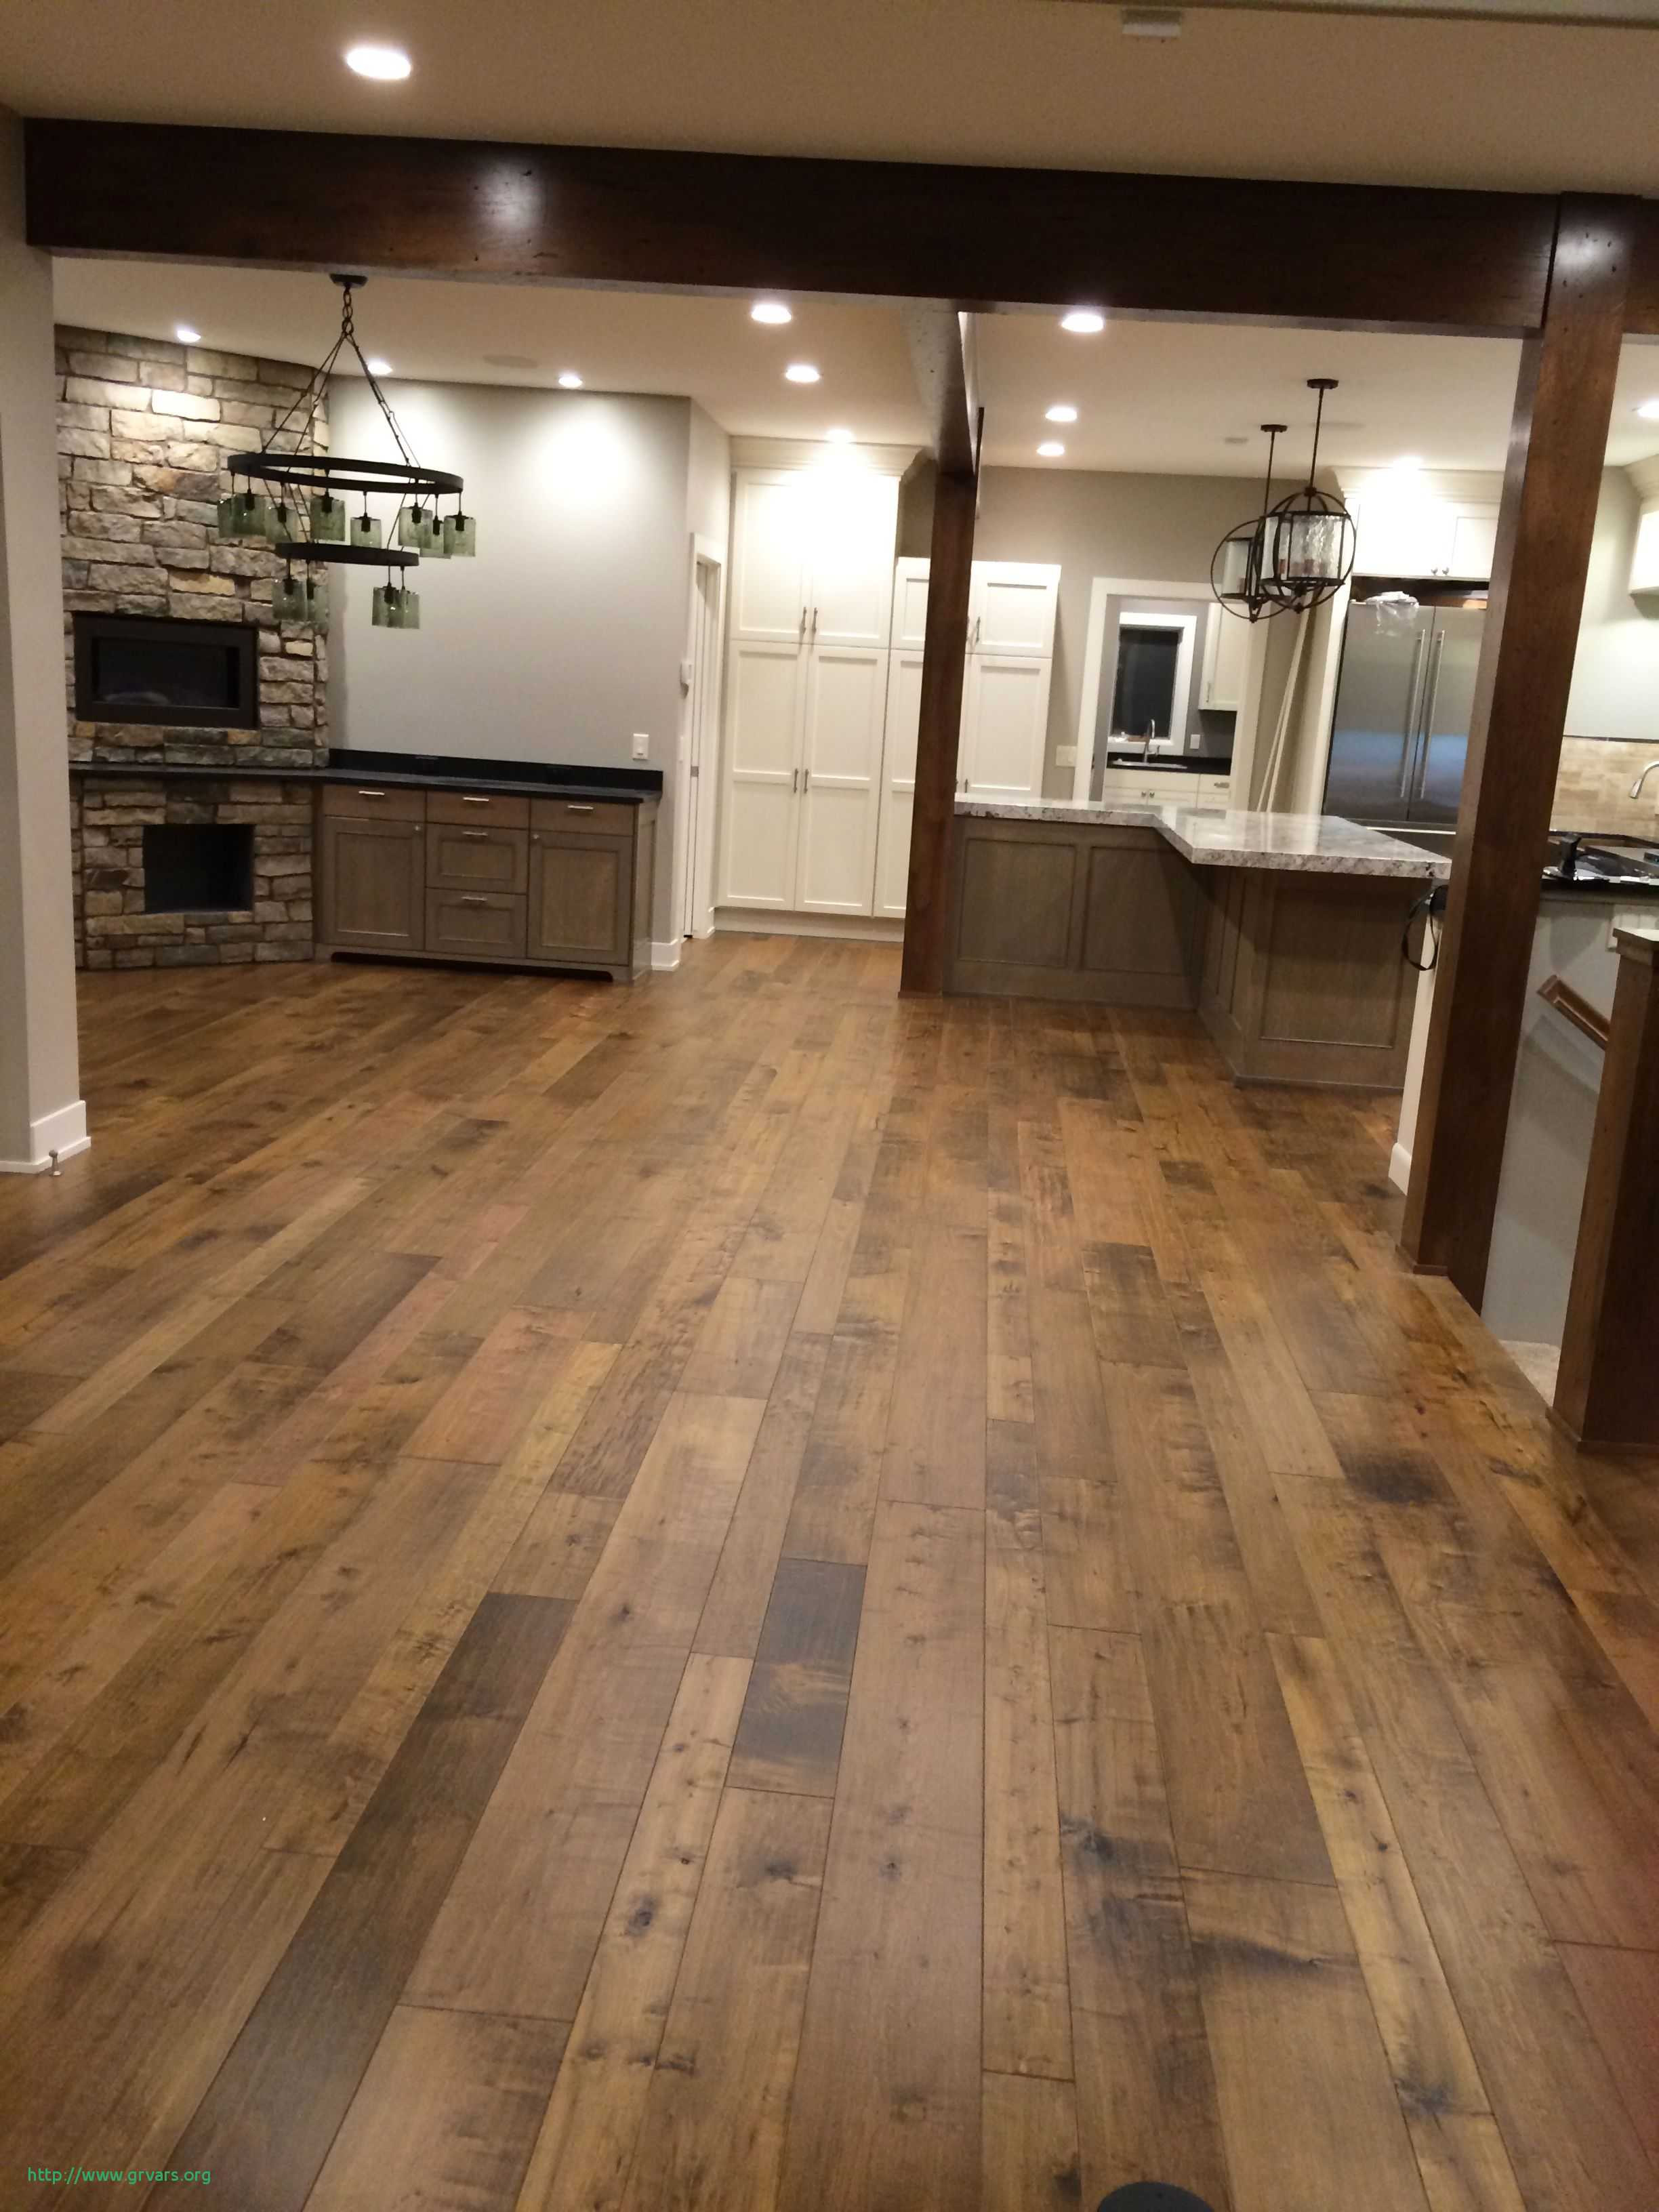 How to Install Glue Down Hardwood Floors Of 19 Frais How to Clean Glue Off Hardwood Floors Ideas Blog Pertaining to How to Clean Glue Off Hardwood Floors Meilleur De Monterey Hardwood Collection Rooms and Spaces